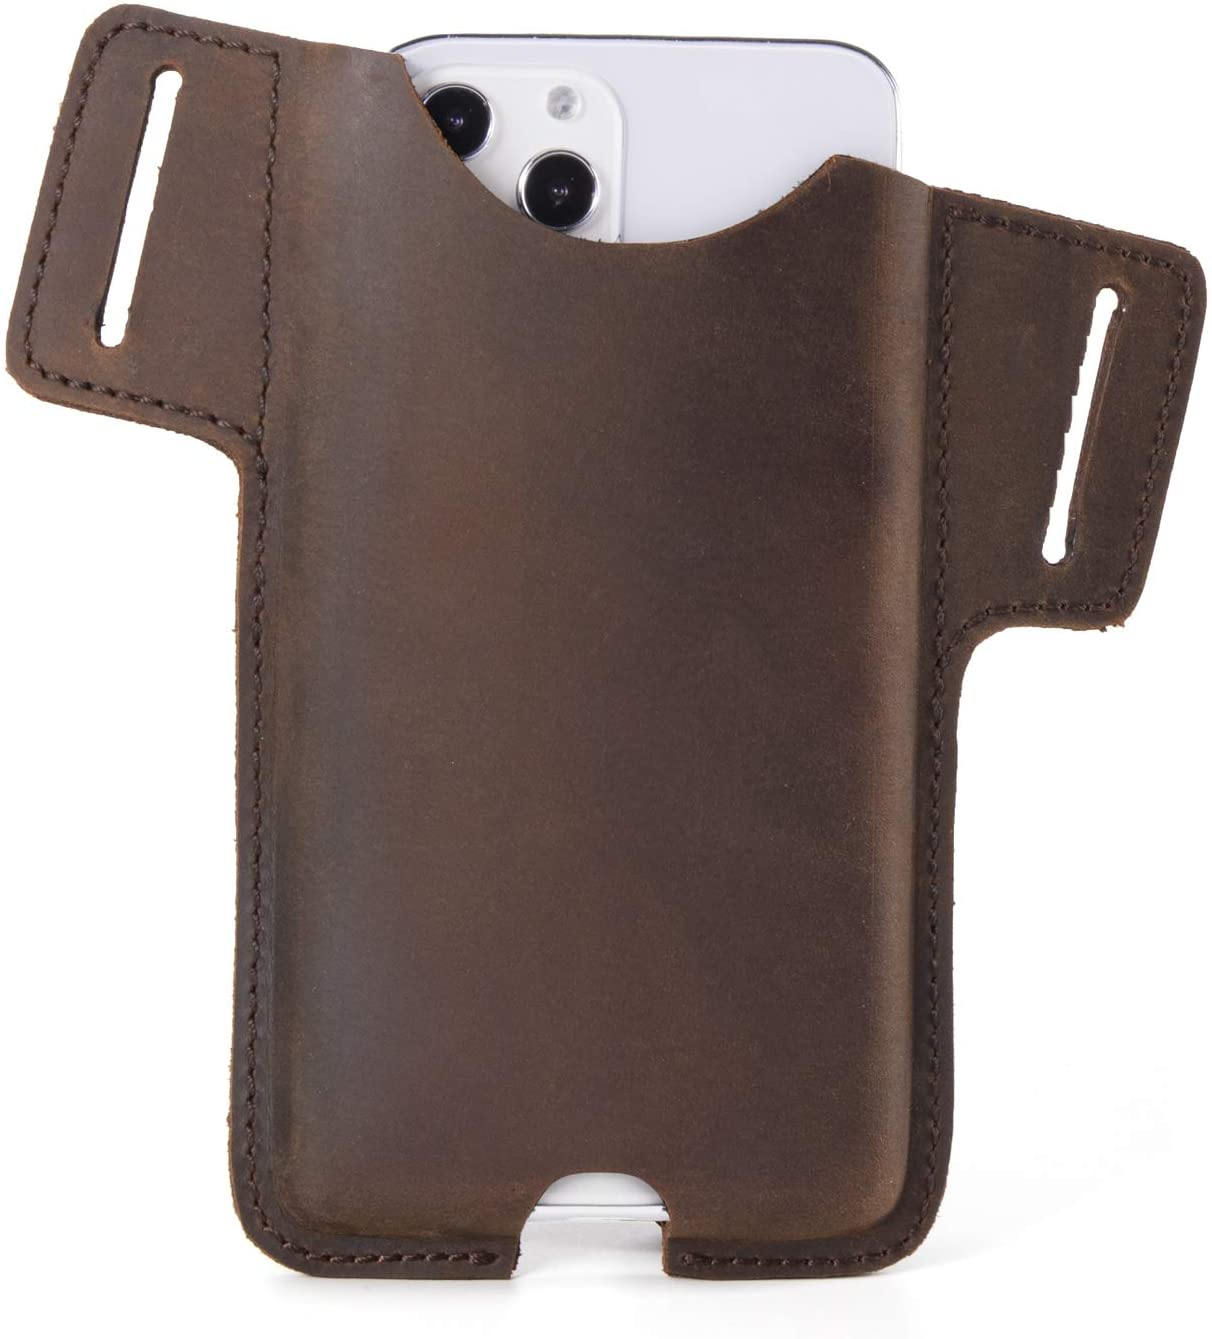 Gentlestache Leather Cell Phone Holster for Belt,Phone Case Leather, Belt Cell Phone Holder, Leather Phone Pouch, Leather Phone Sheath ,iPhone 12, 12 Pro Max,11 Pro Max, XS Max, 8 Plus, Galaxy S20